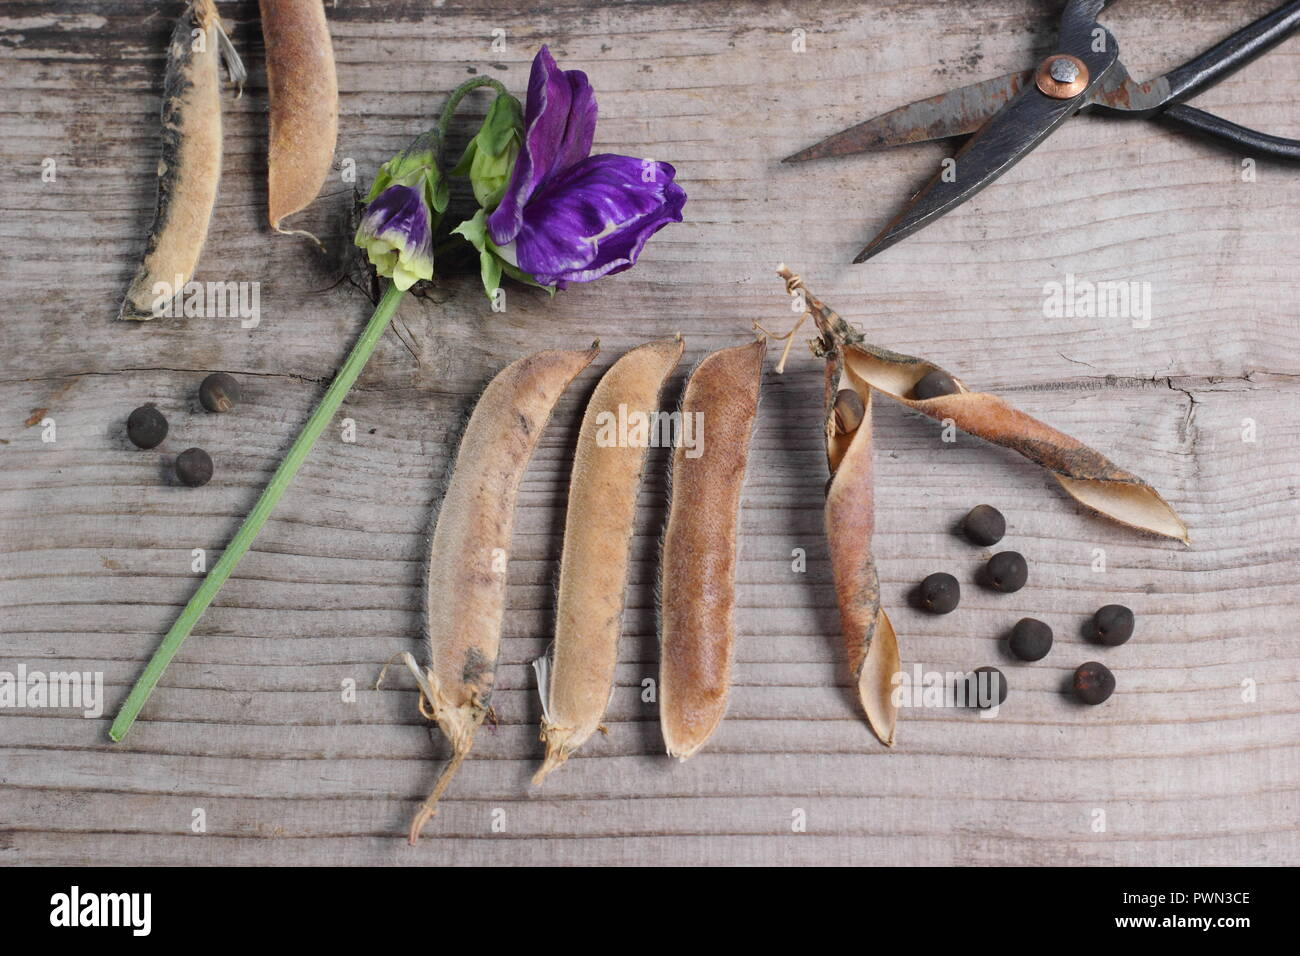 Lathyrus odoratus. Fading sweet pea blooms, dried sweet pea pods and sees ready to be saved for future planting, early autumn, UK - Stock Image